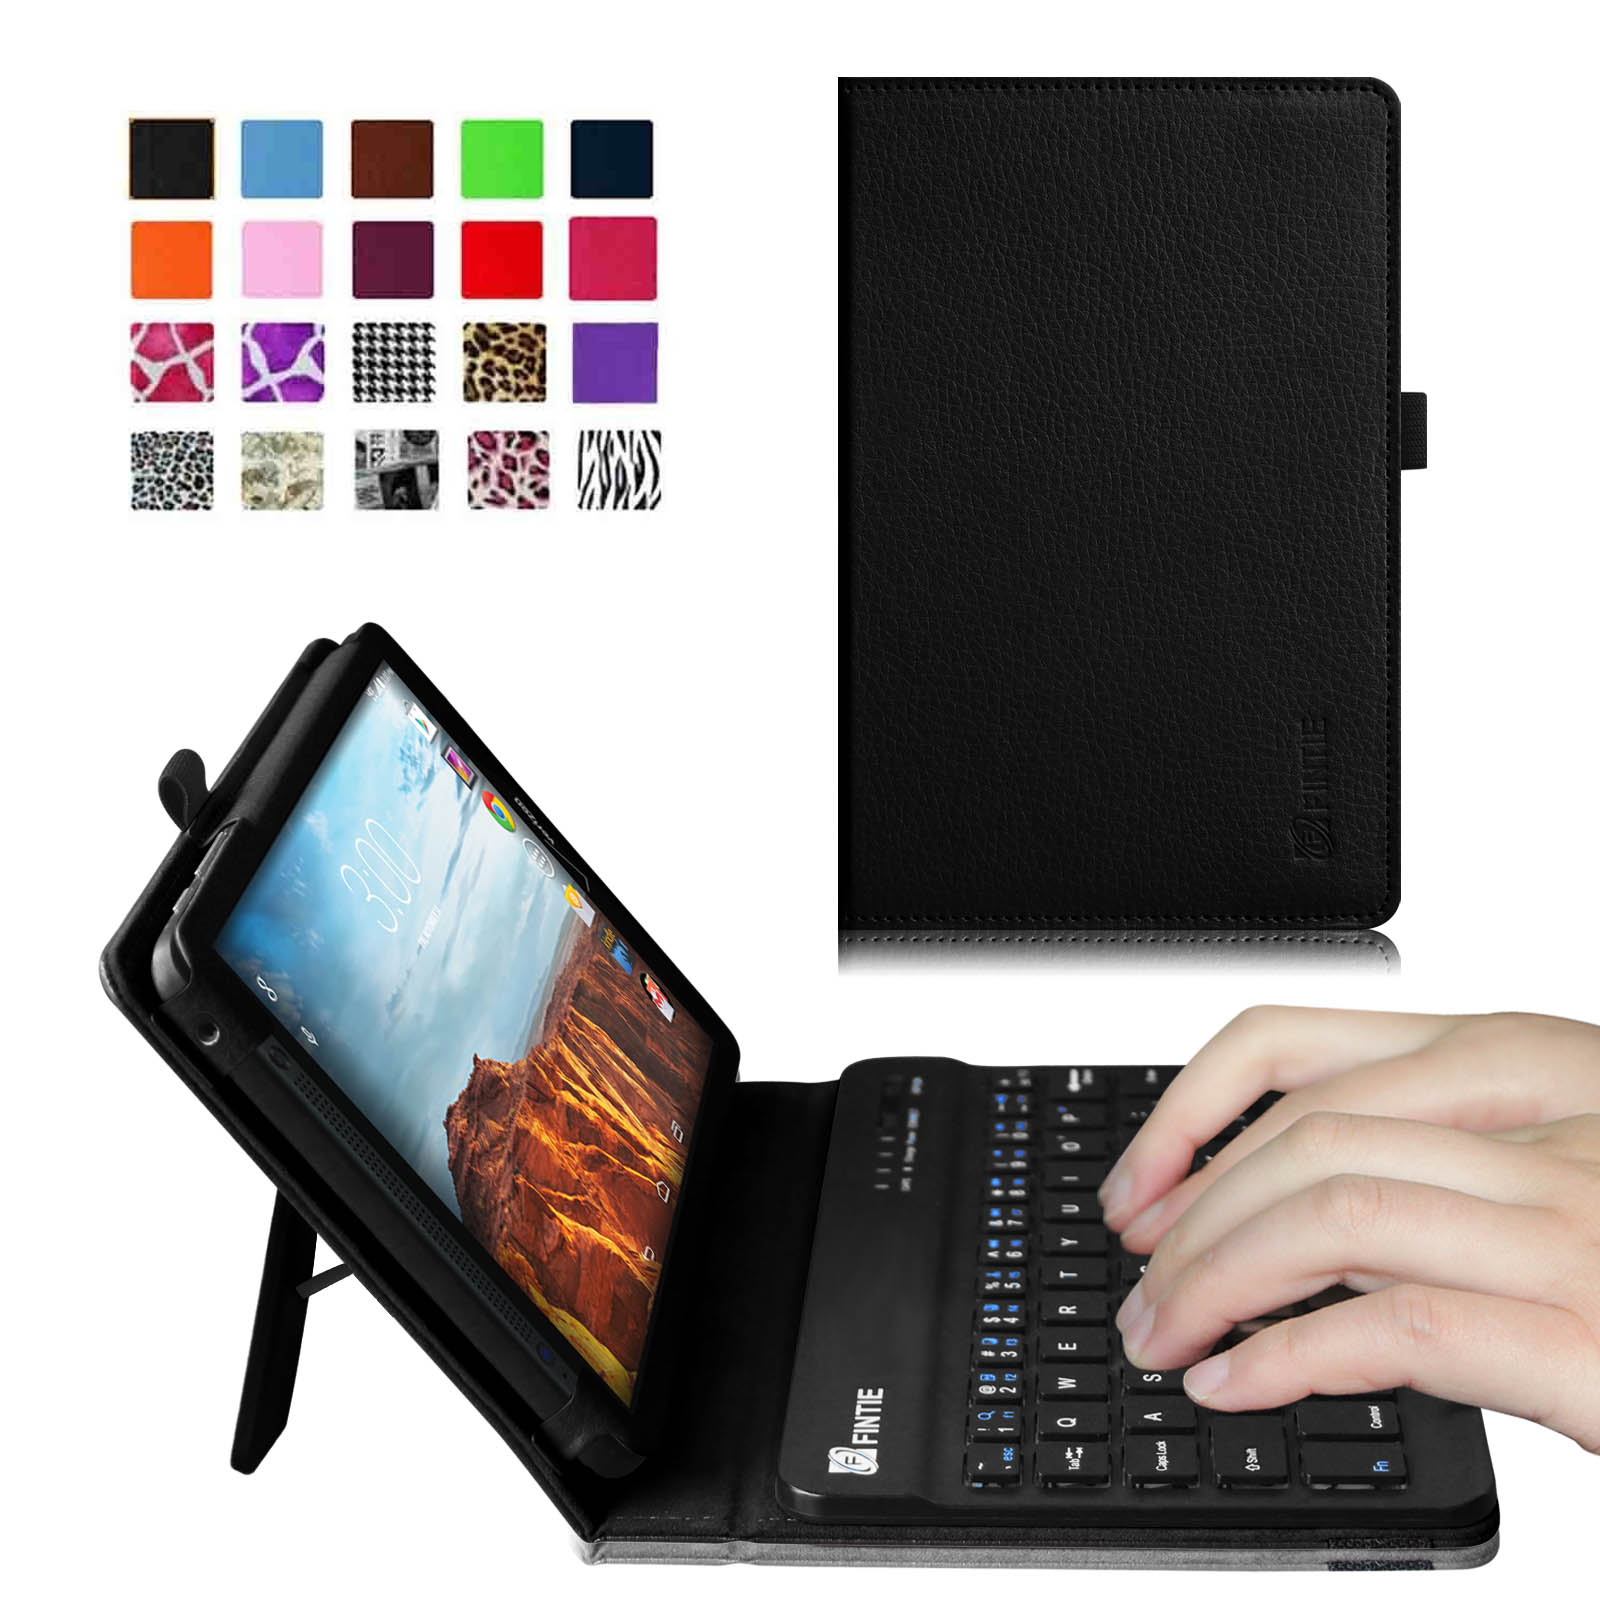 Fintie Verizon Ellipsis 8 Keyboard Case (Model QTAQZ3) - PU Leather Cover  with Removable Bluetooth Keyboard, Black